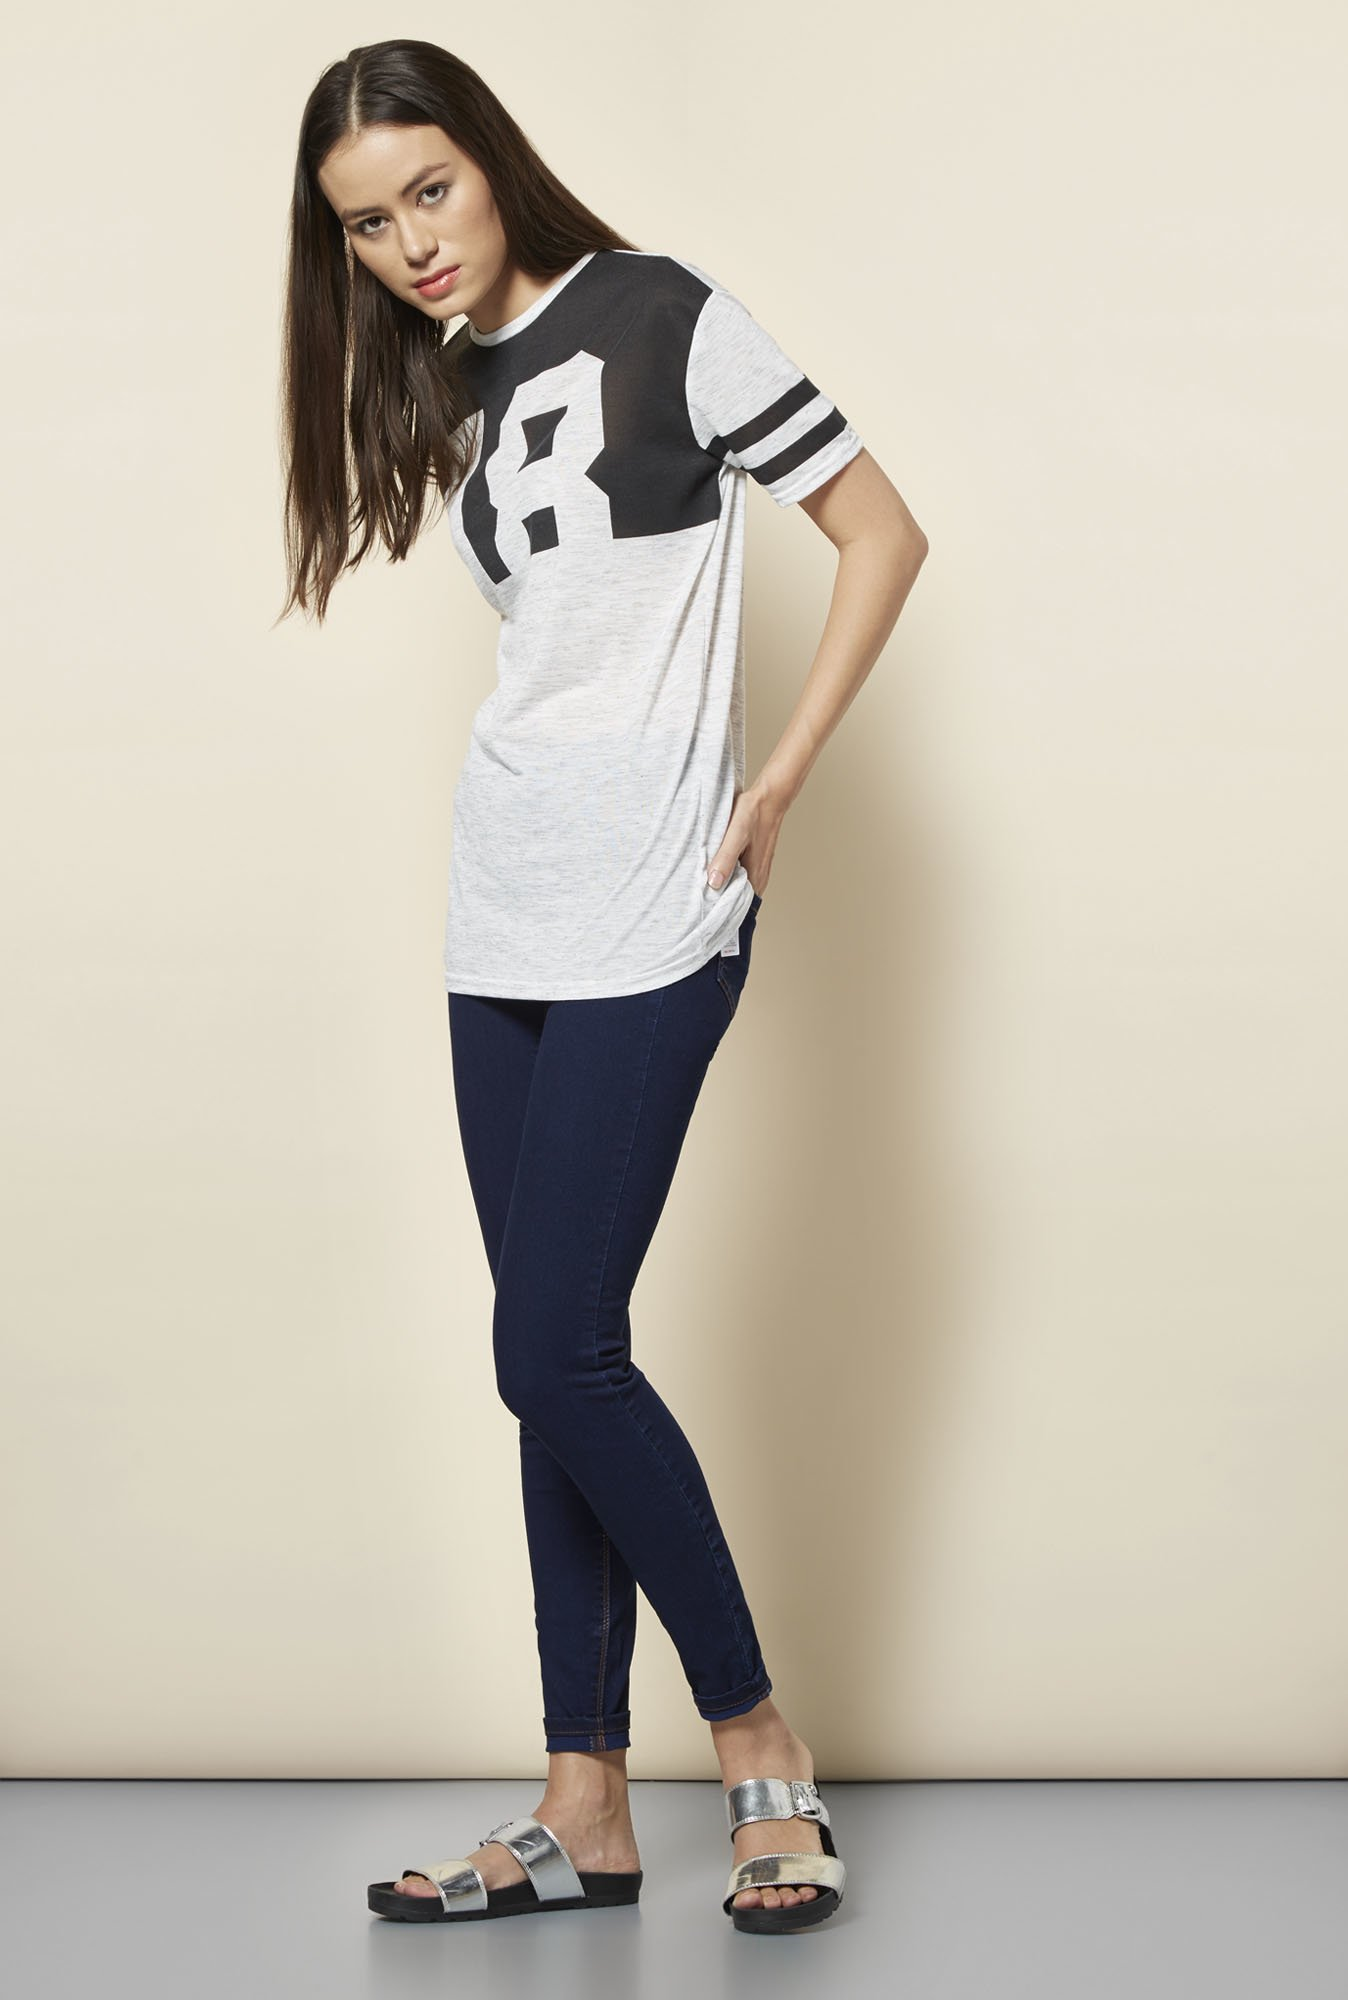 New Look Grey Printed Baseball T- Shirt